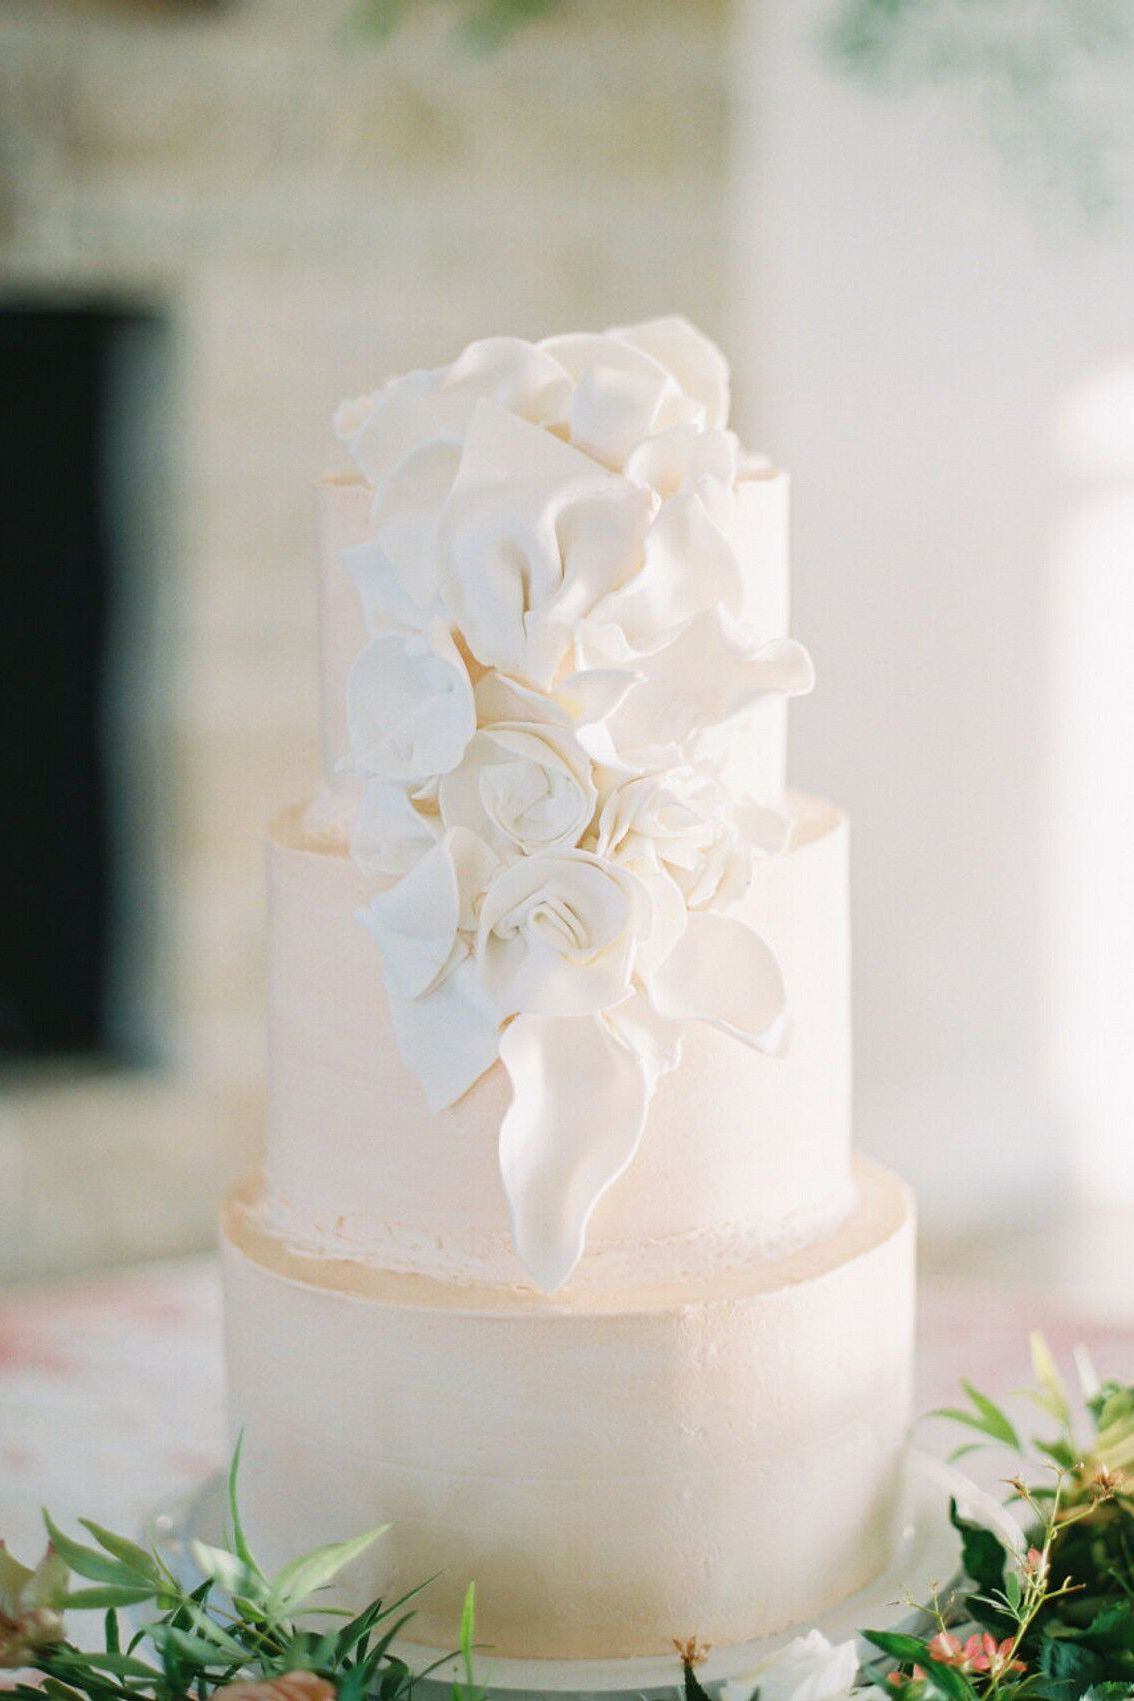 These Pharmacists Paid Homage To Their Careers During Their Dove Ridge Vineyard Wedding In Texas In 2021 Tiered Wedding Cake Cool Wedding Cakes Wedding Cake Rustic